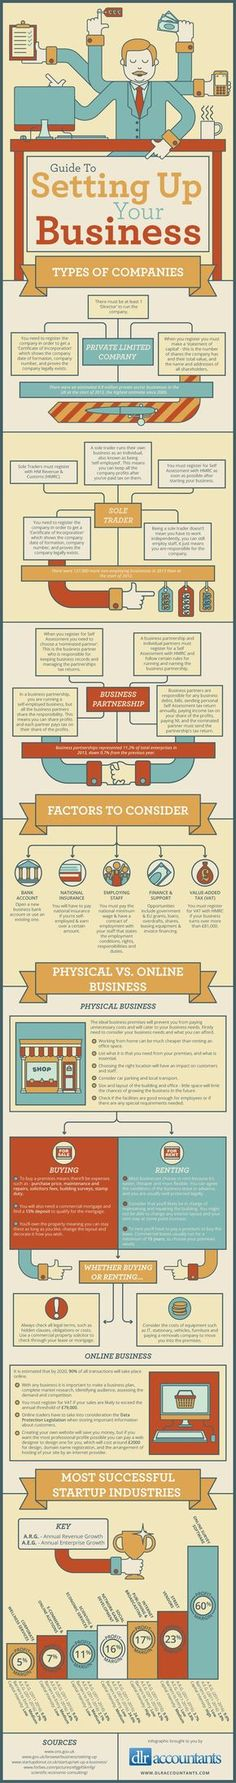 Guide To Setting Up Your Business #infographic #Business #Startup ♥️ Loved and pinned by www.misfeldtaccounting.com